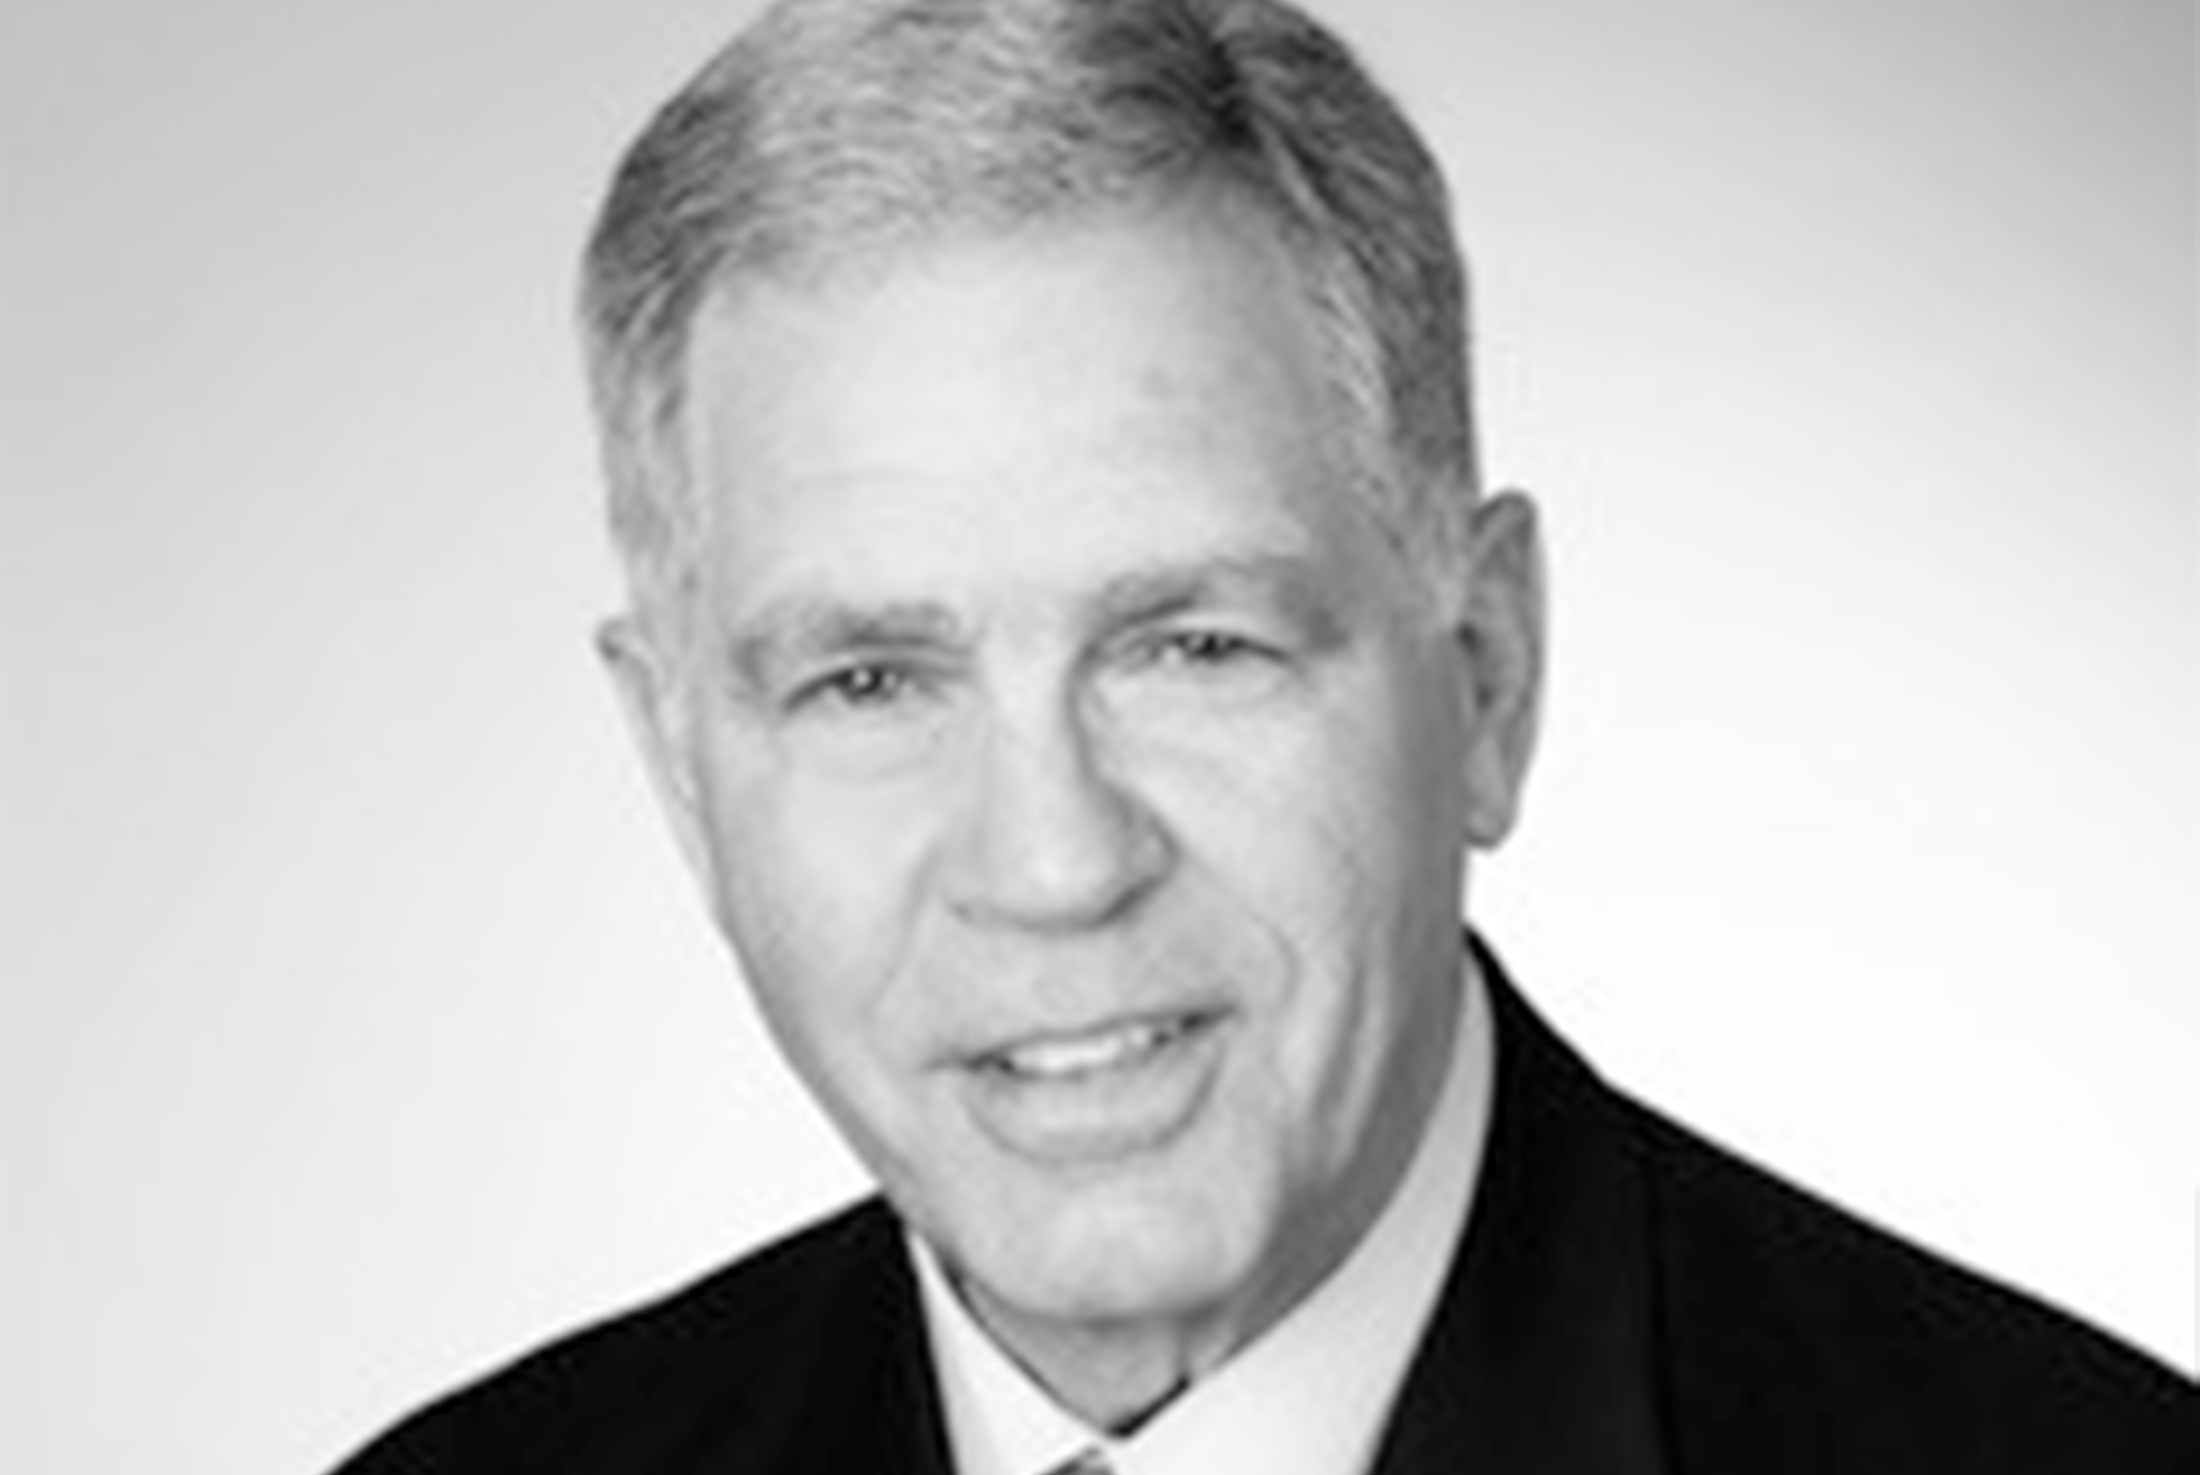 Bill Hallett leads Armstrong Strategy Group's Philanthropy Division